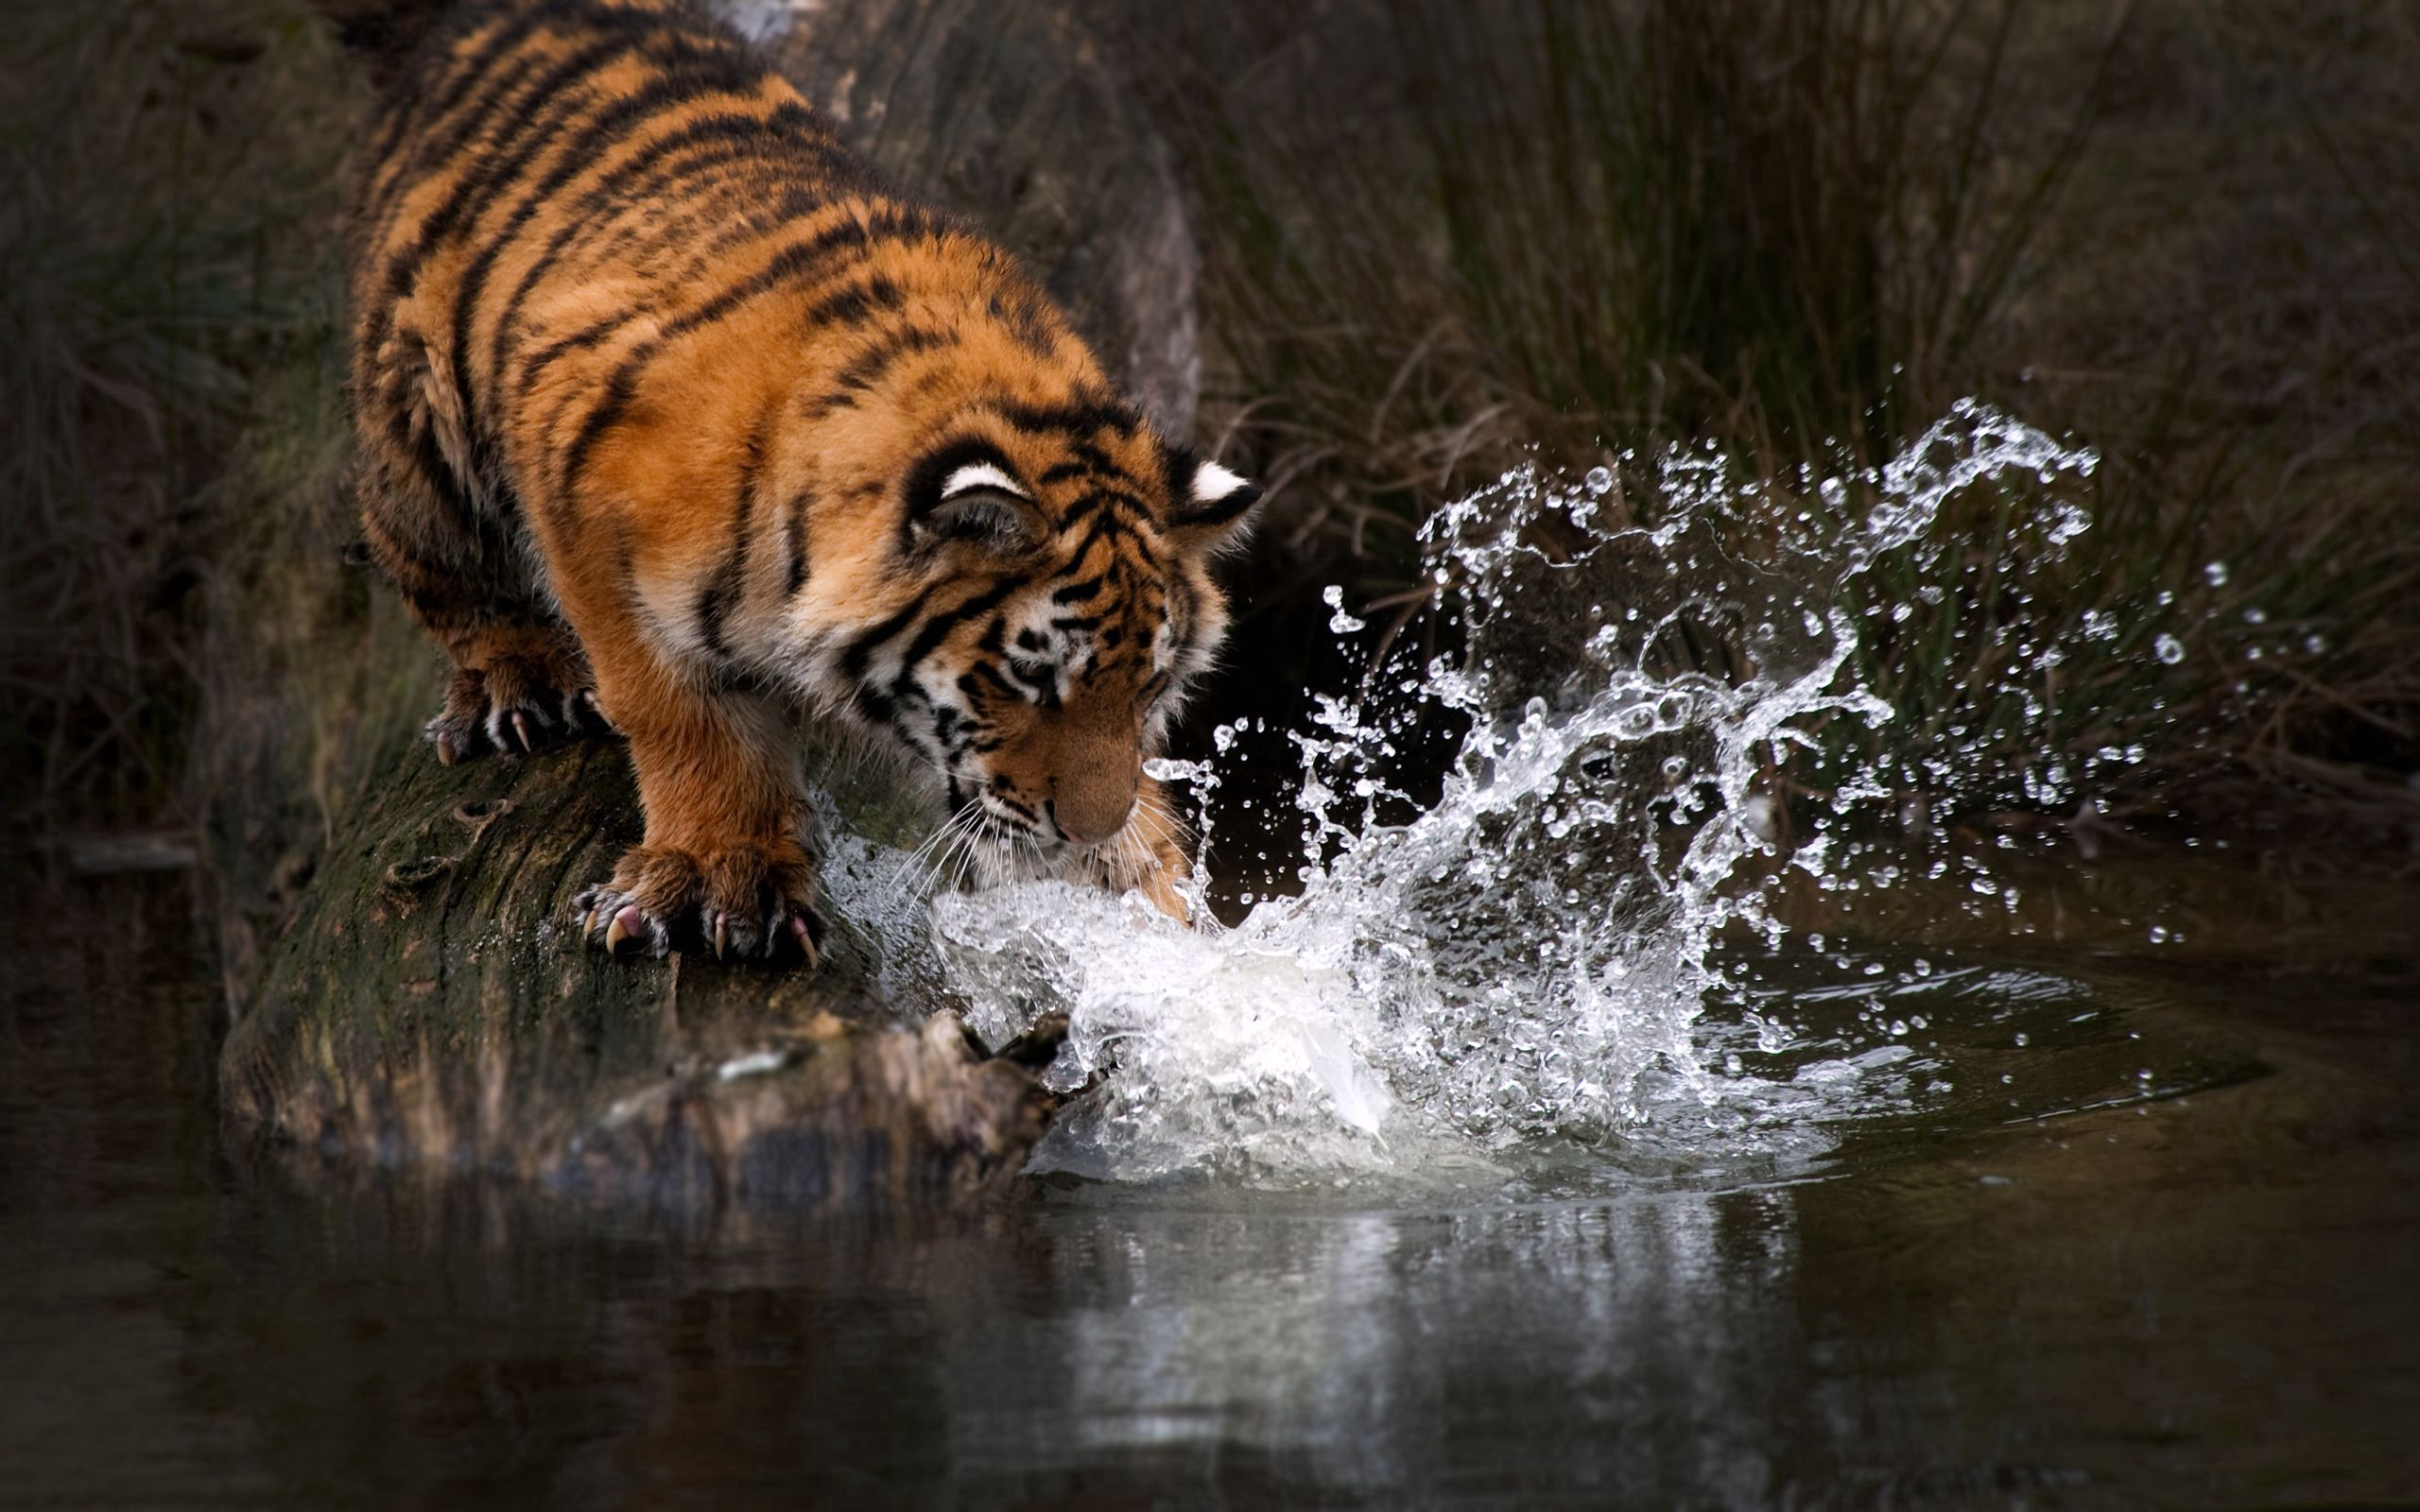 109941 download wallpaper Animals, Tiger, Water, Splash, Predator screensavers and pictures for free